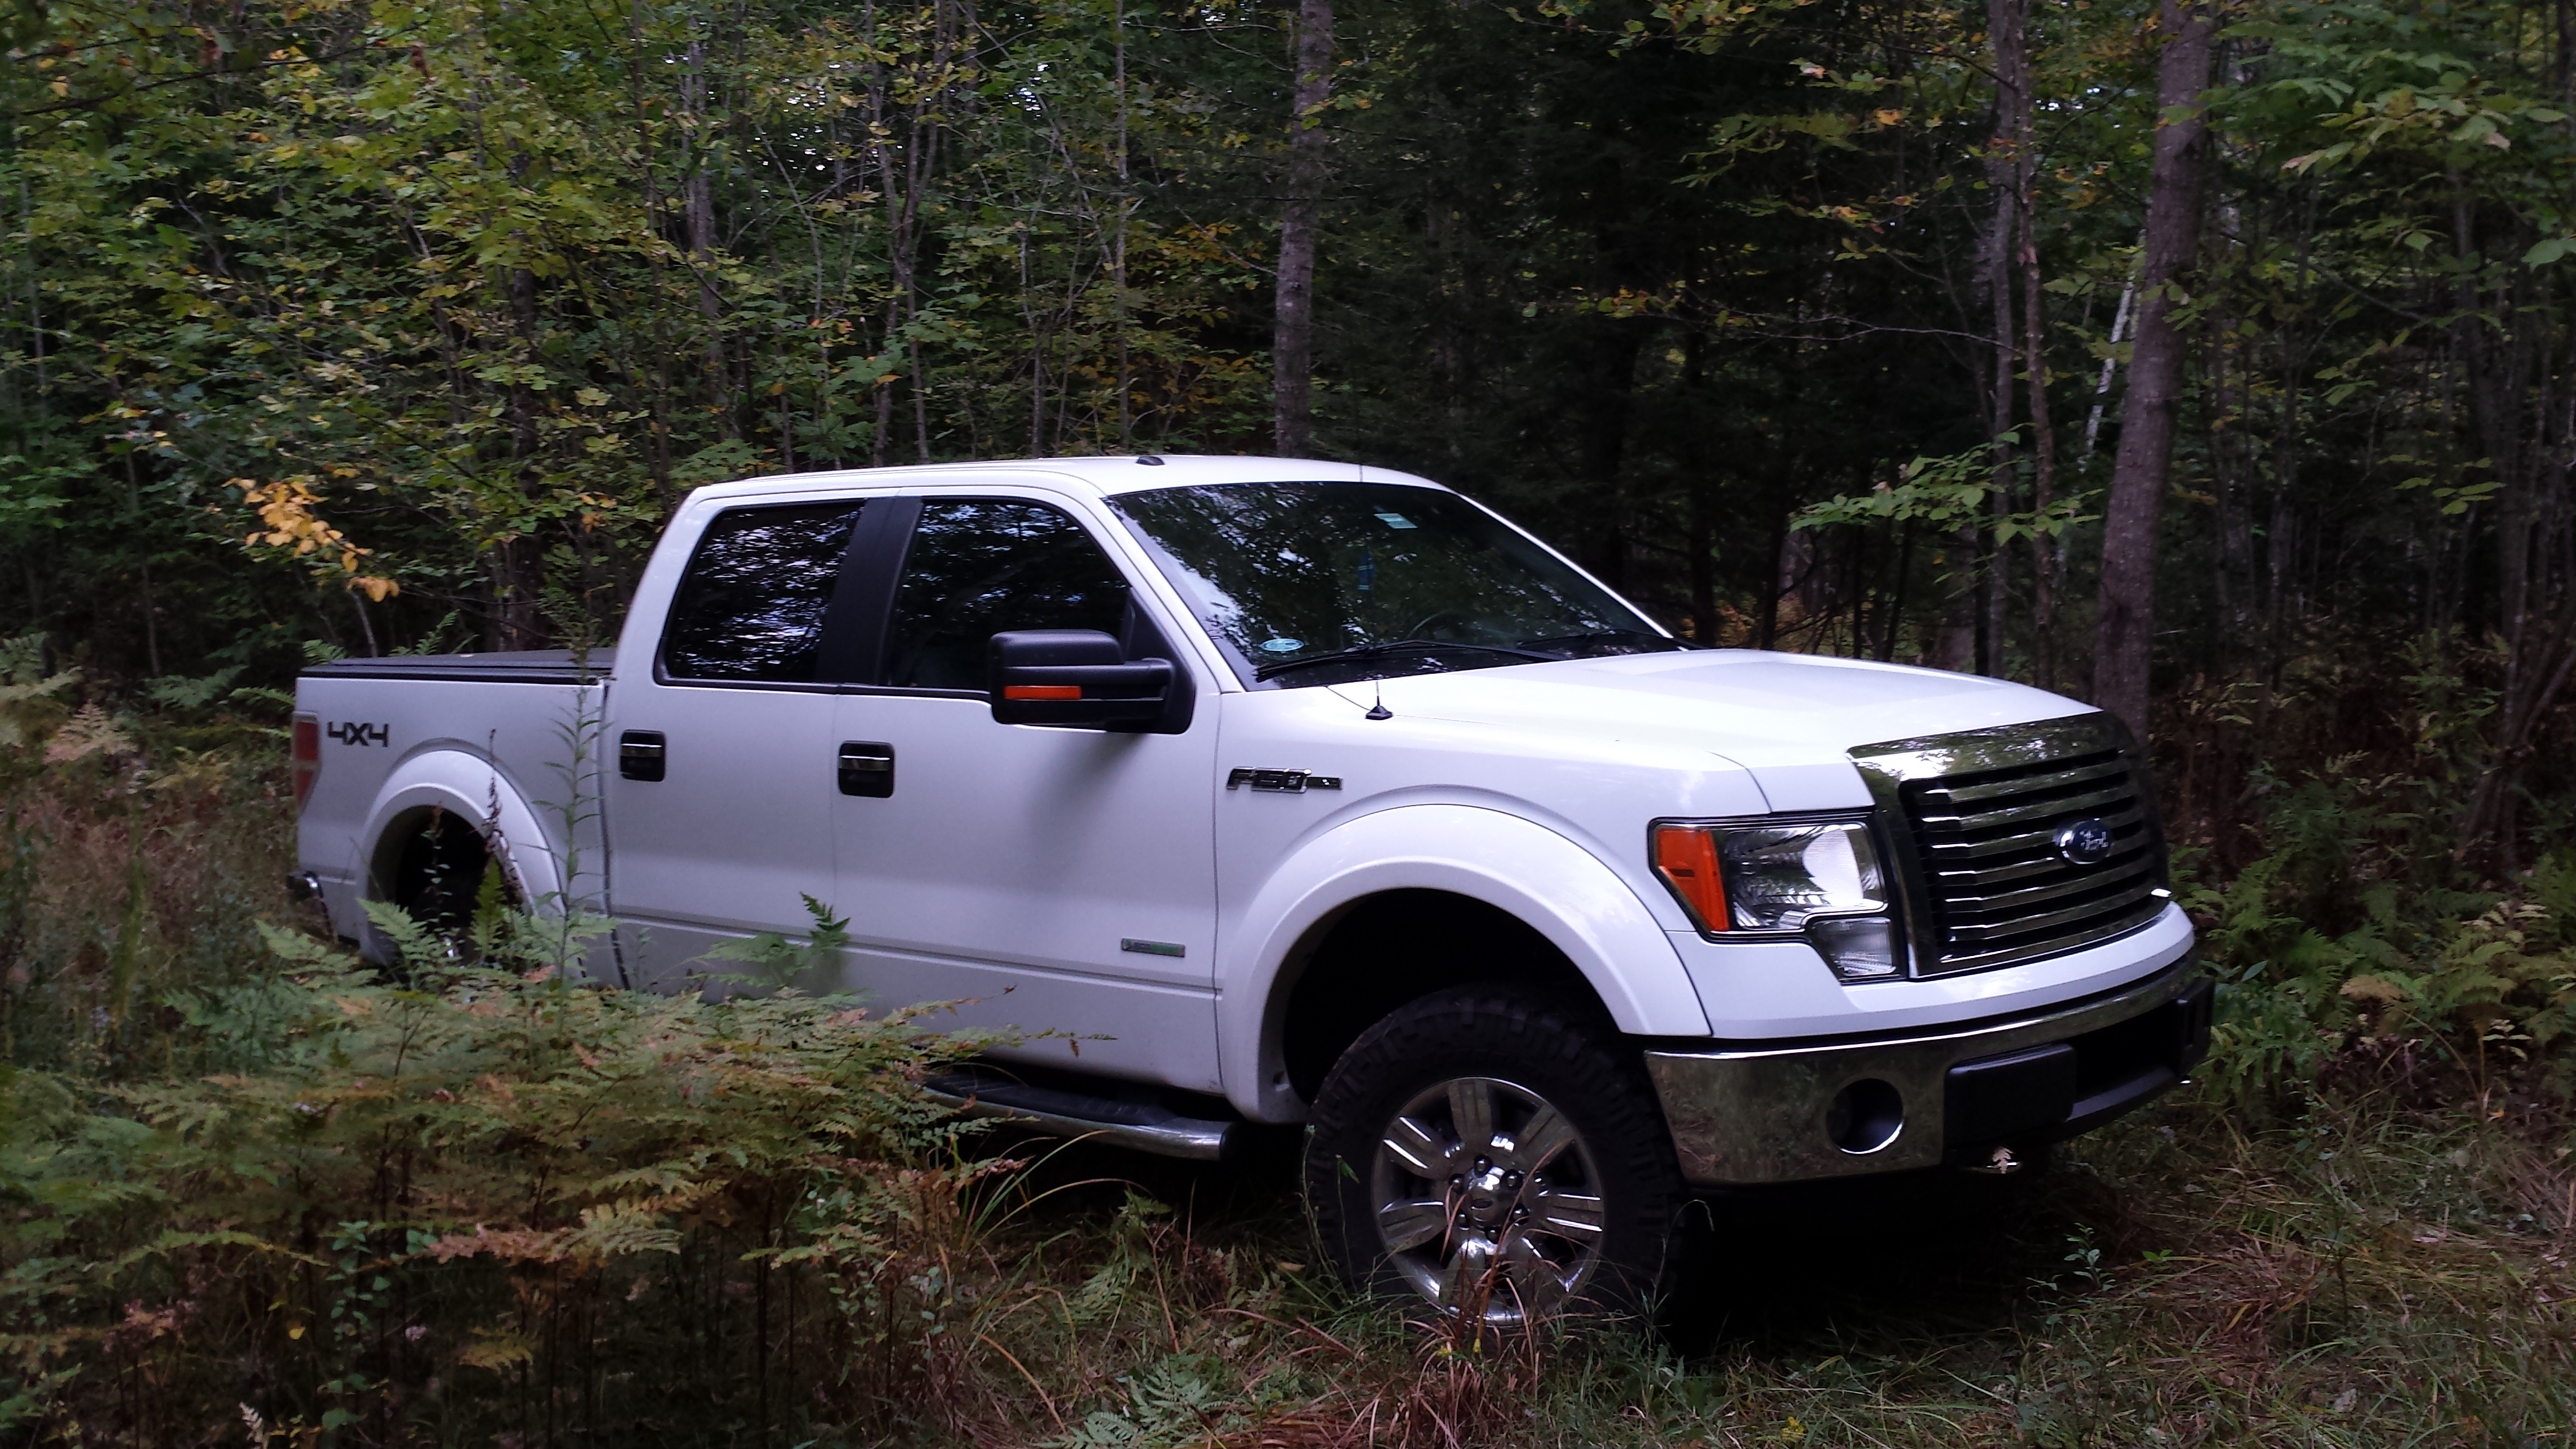 pictures of your customized white trucks please